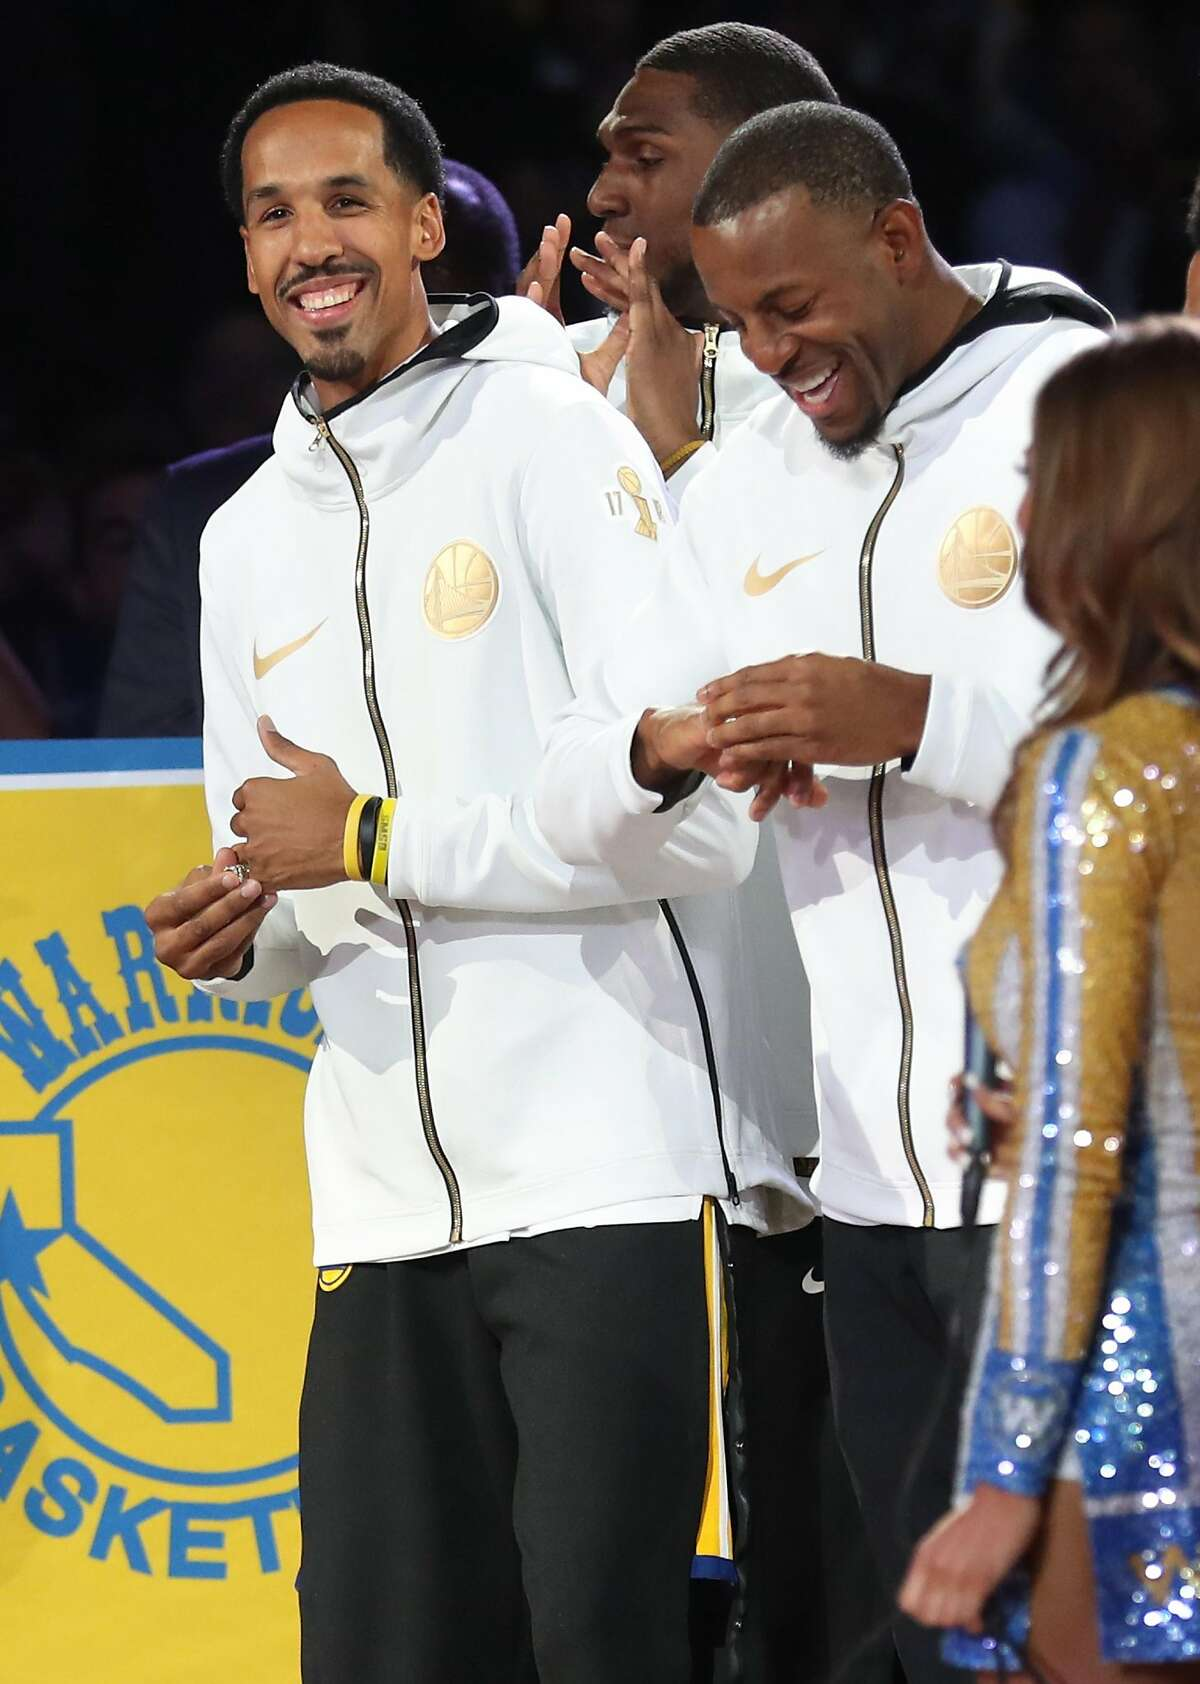 Golden State Warriors' Shaun Livingston and Andre Iguodala enjoy the Warriors' 2018 NBA Championship ring ceremony before Opening Night game against Oklahoma City Thunder at Oracle Arena in Oakland, Calif. on Tuesday, October 16, 2018.